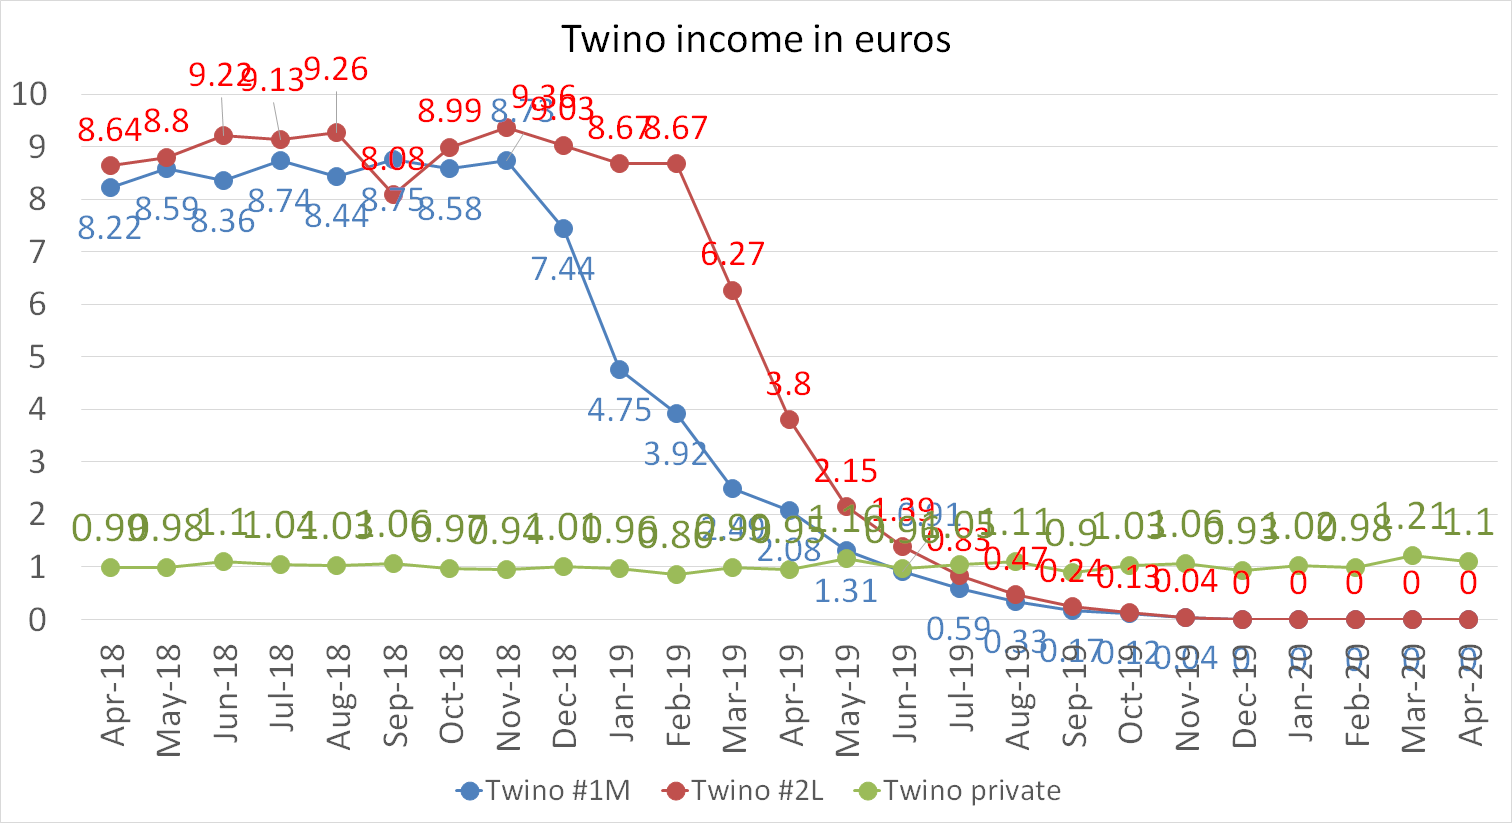 Twino income in euros april 2020